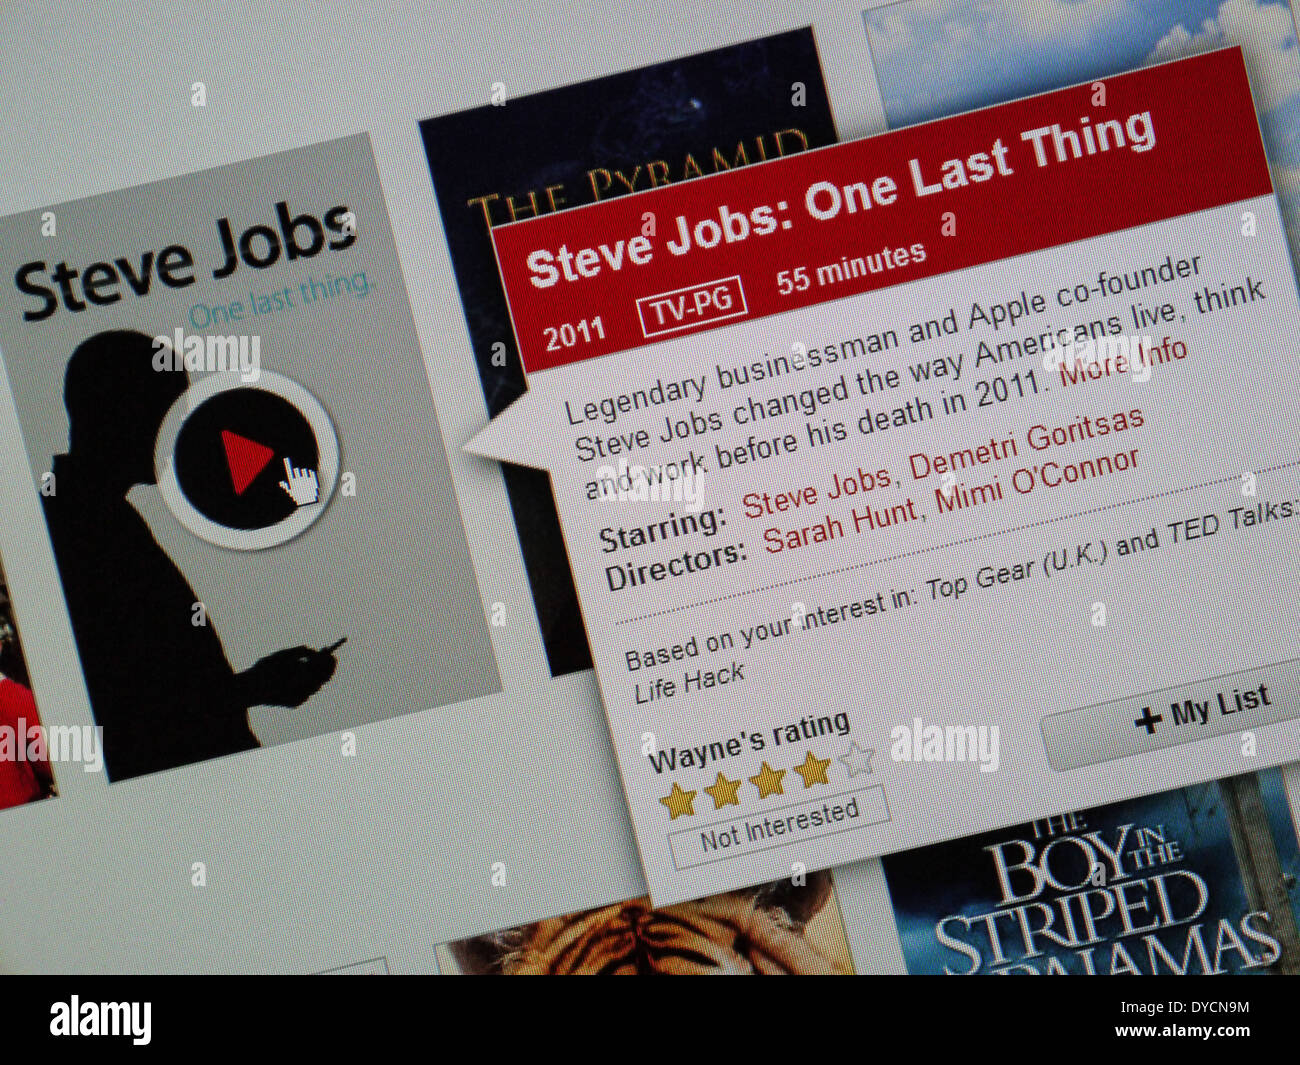 Steve Jobs netflix documental Imagen De Stock